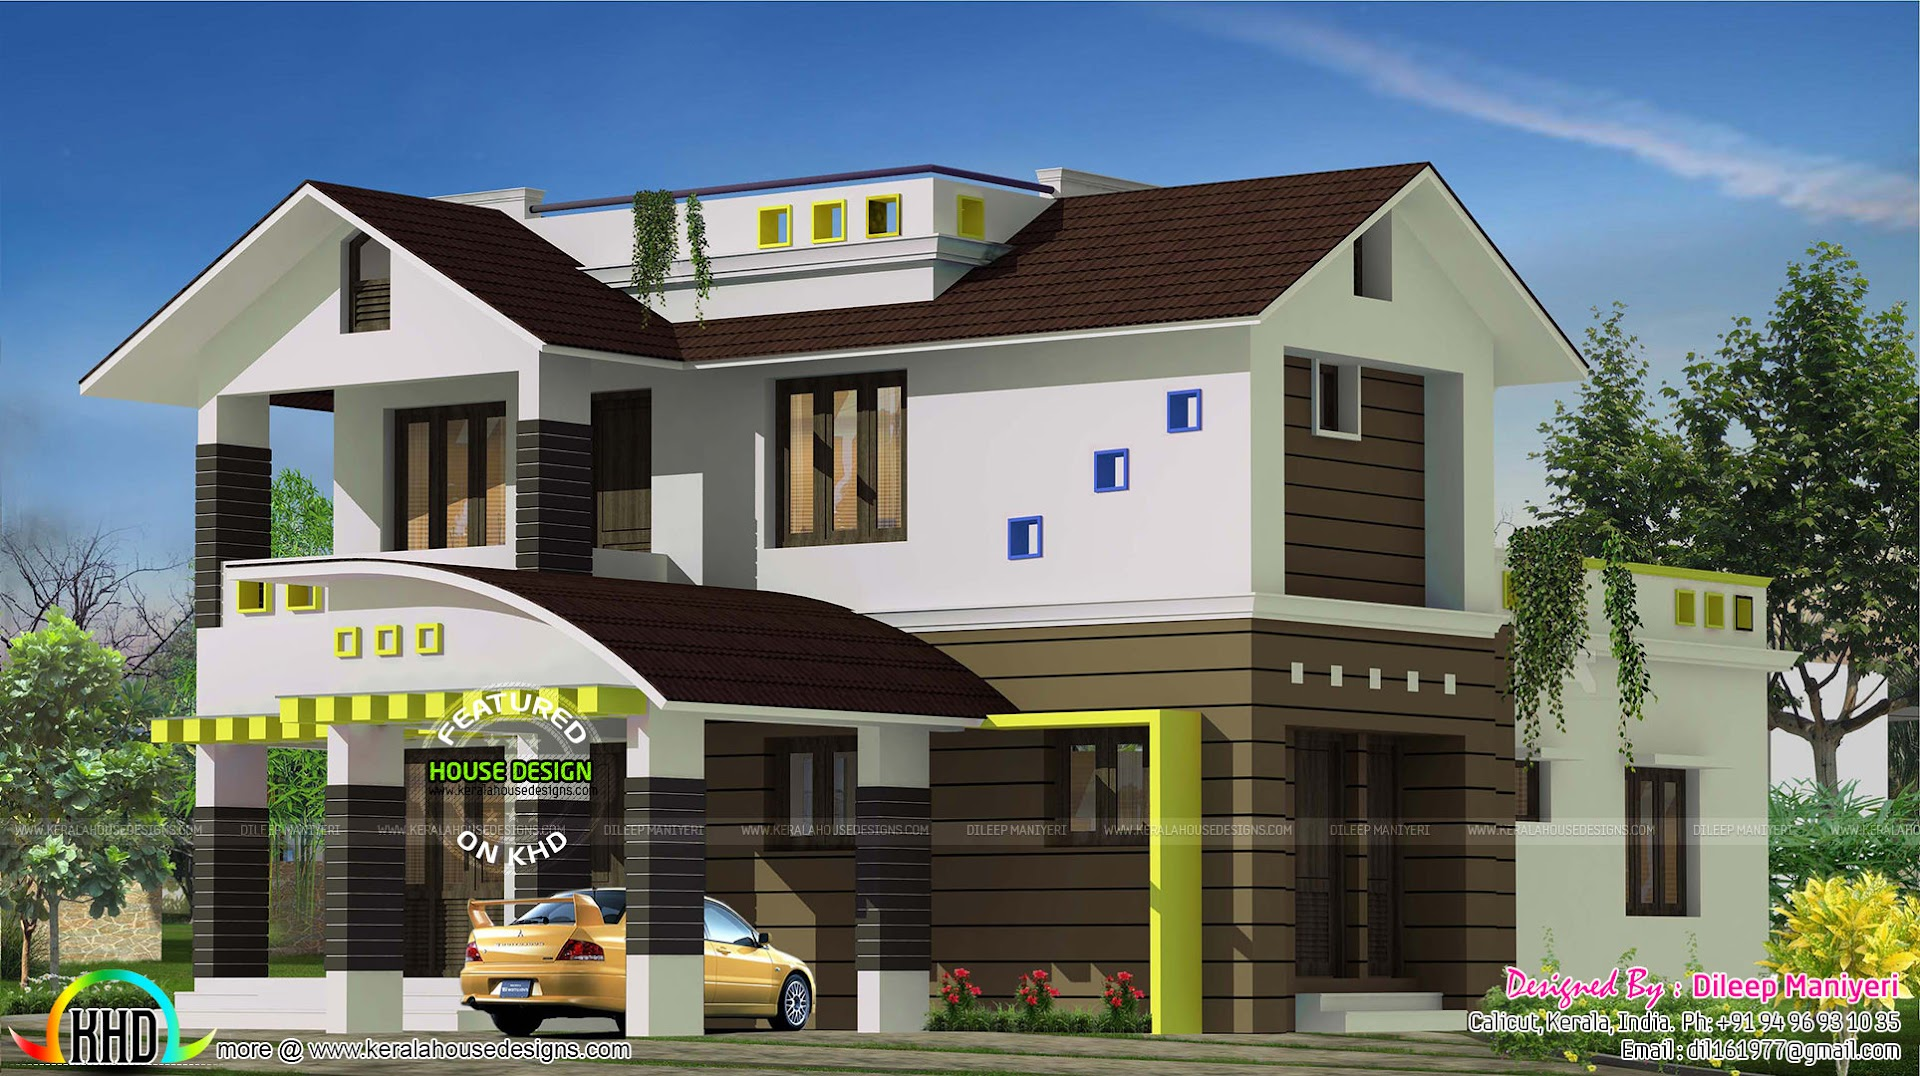 4 Bedroom Mixed Roof Home Part - 17: 2325 Sq-ft Mixed Roof 4 Bedroom Home